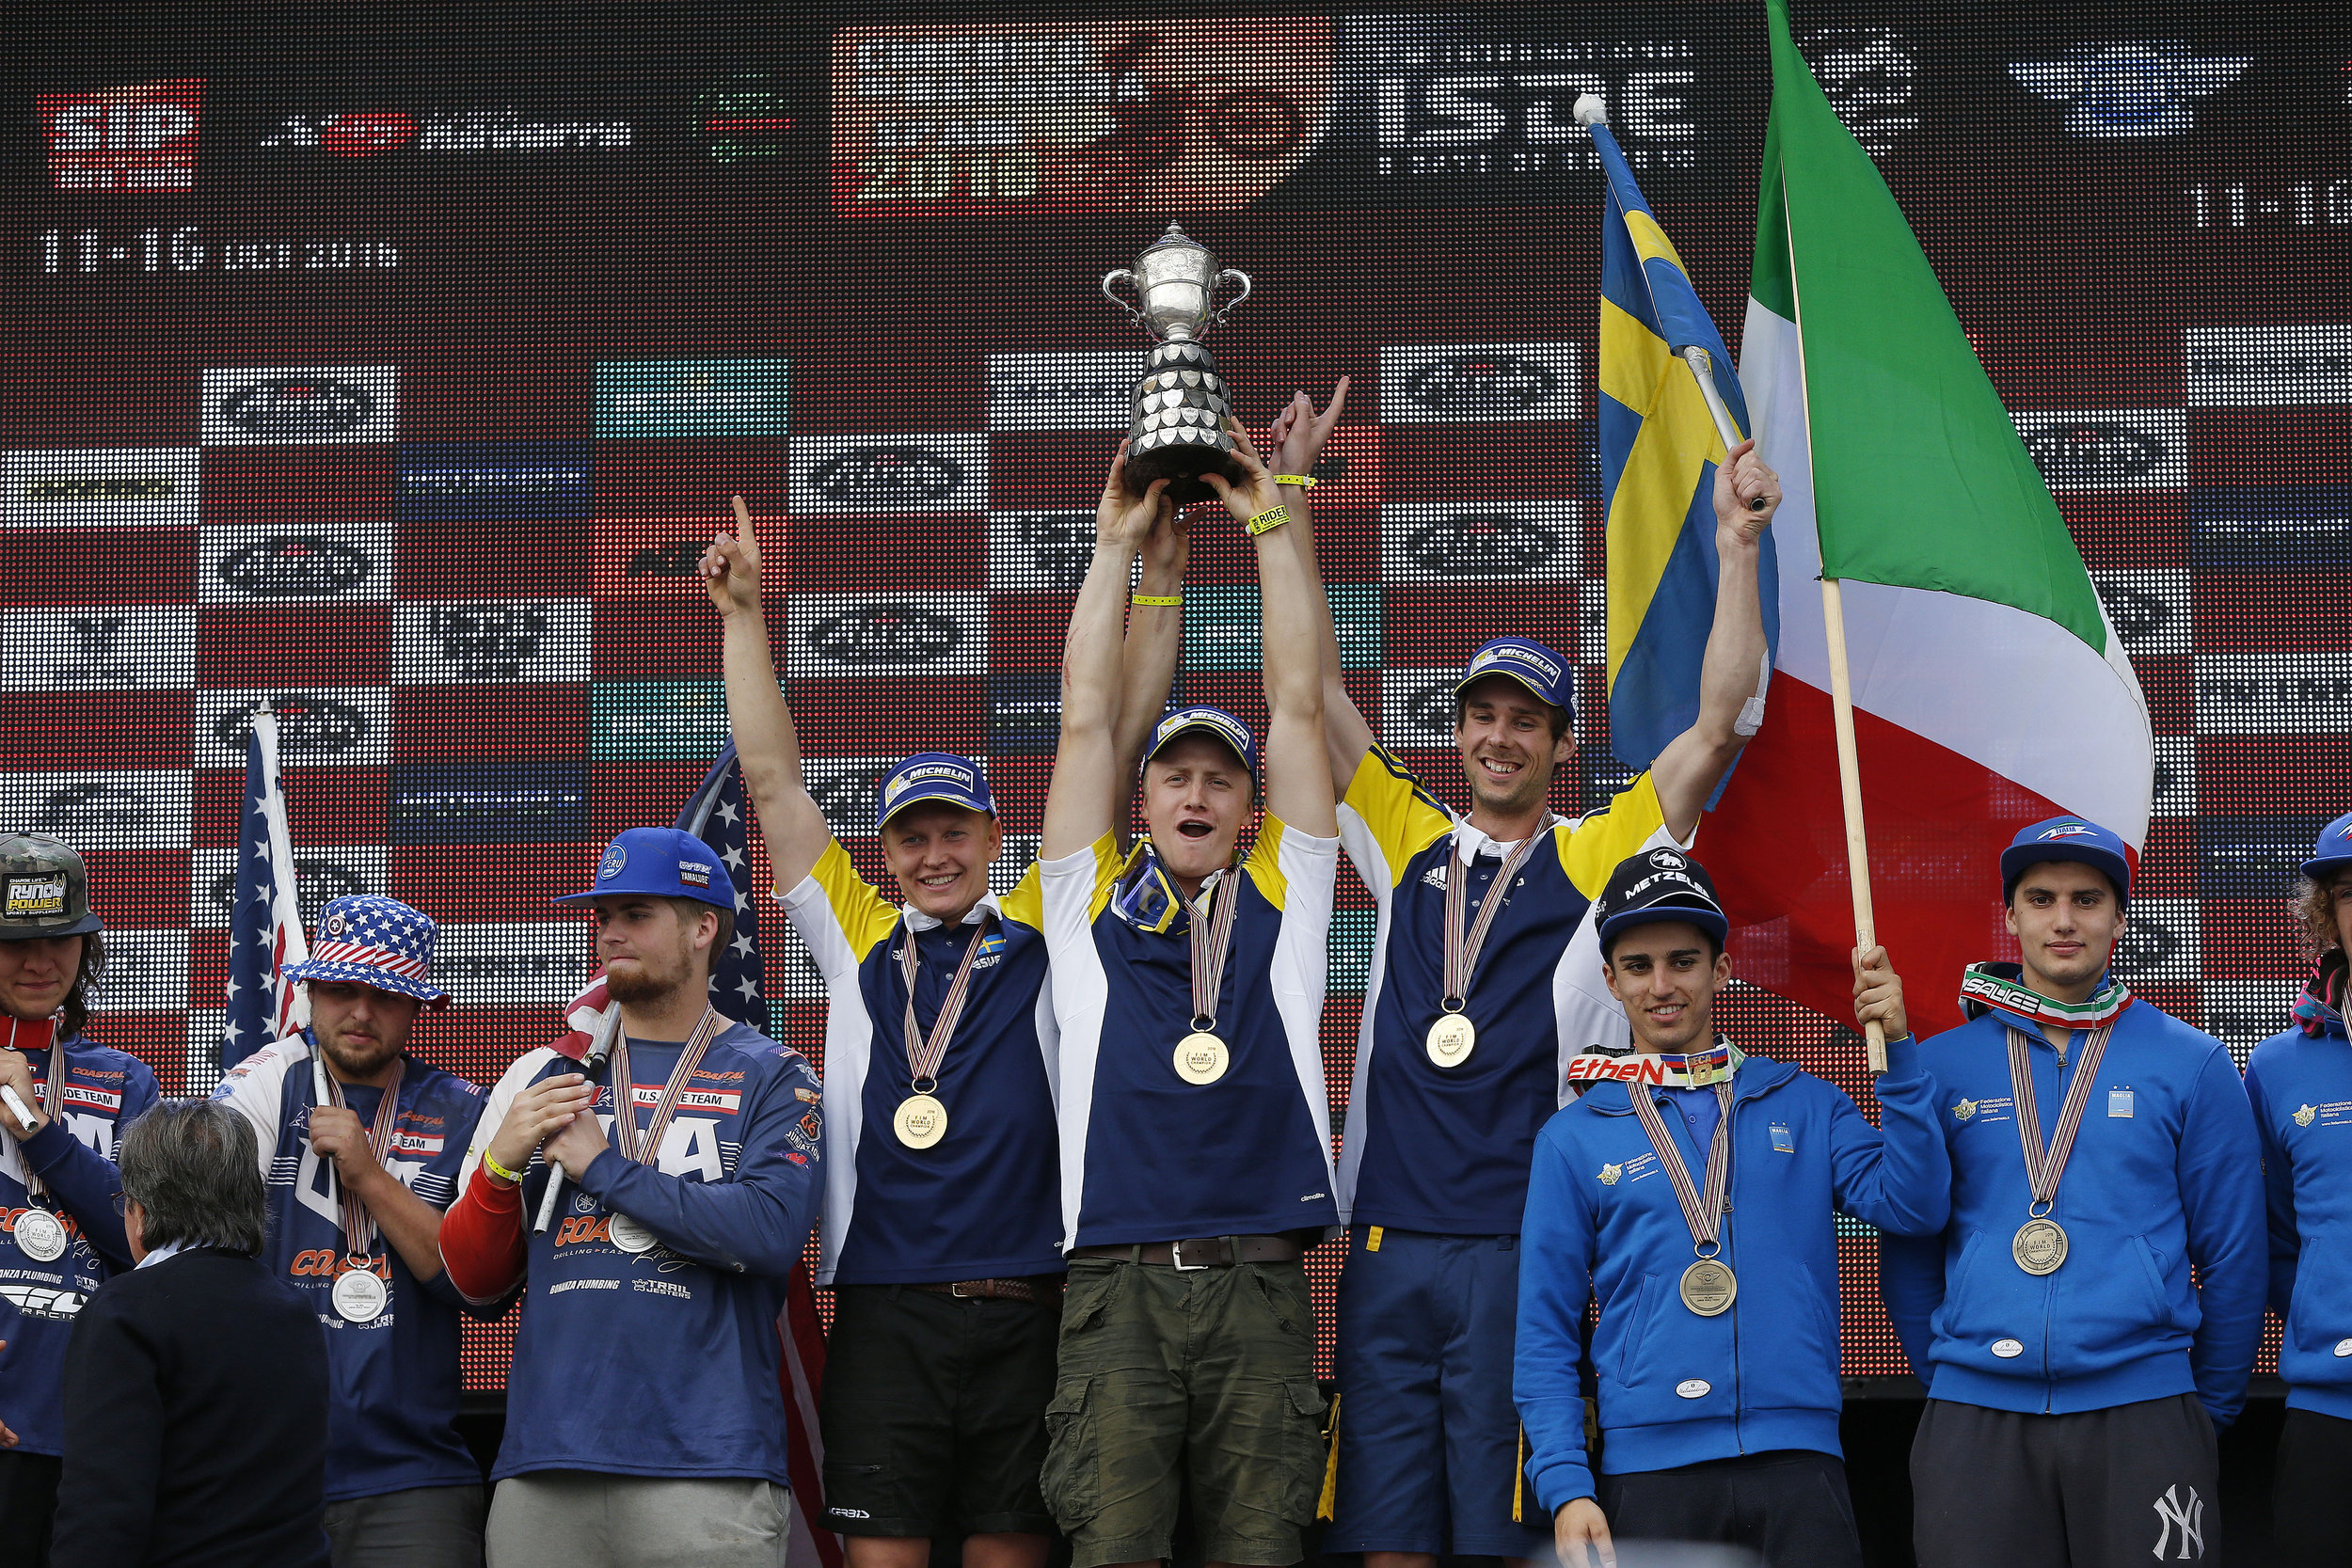 sweden.junior.trophy_ISDE 2016_16683.jpg